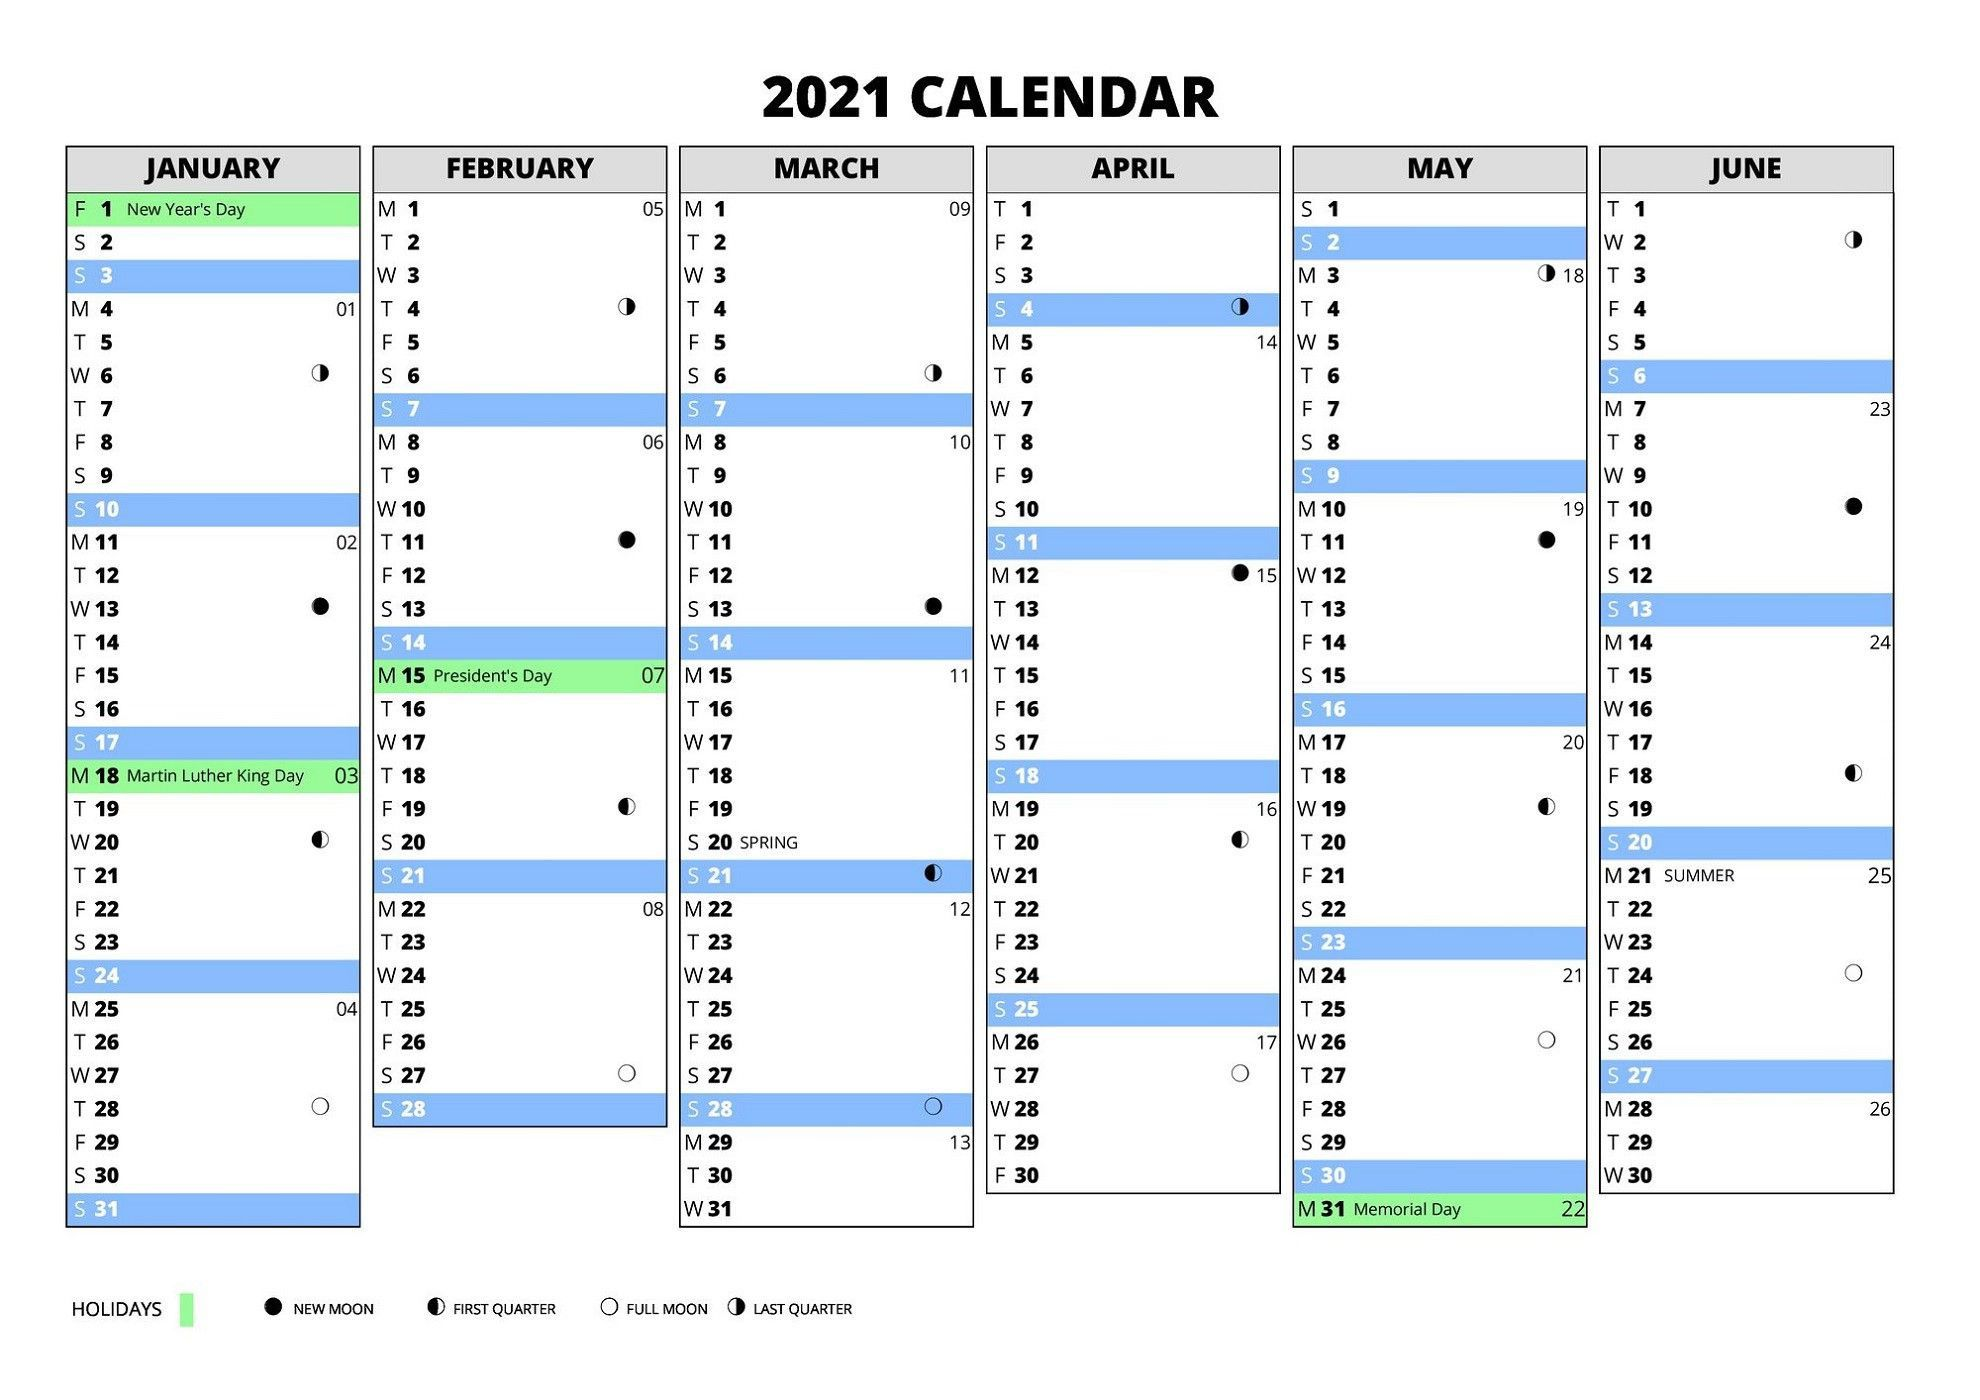 002 Amazing Excel Calendar 2021 Template Highest Clarity  Yearly MicrosoftFull